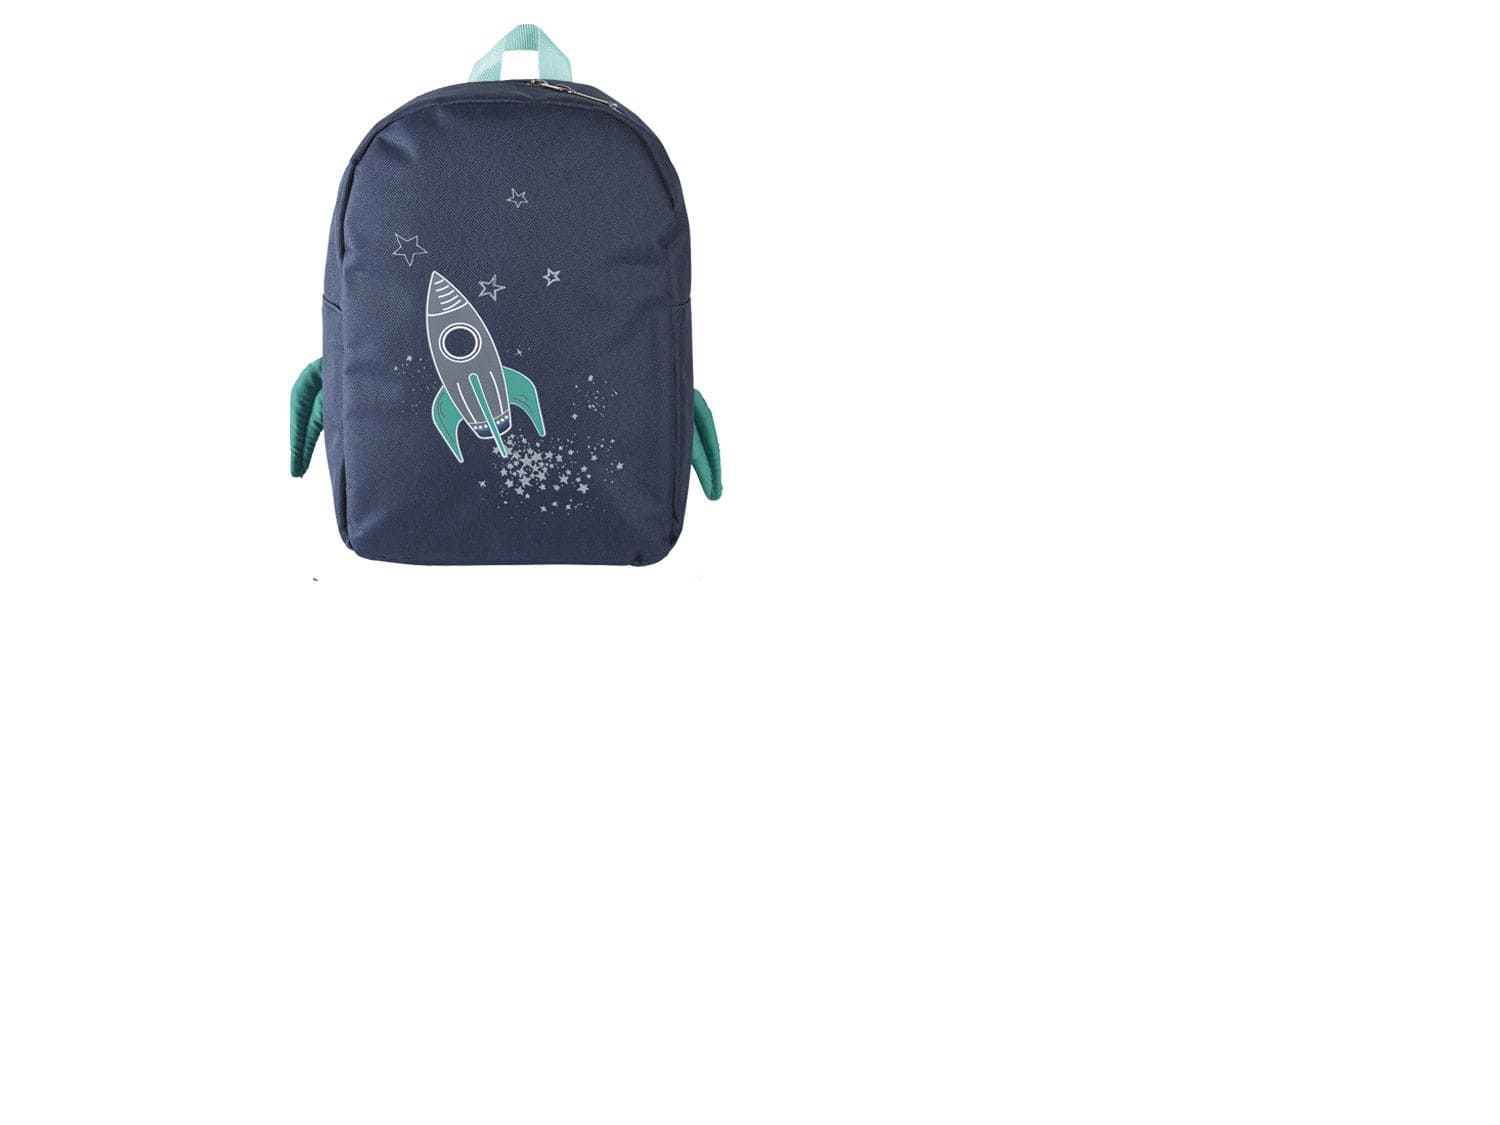 Lupilu Kids Spacecraft Rucksack/School Bag - Stockpoint Apparel Outlet